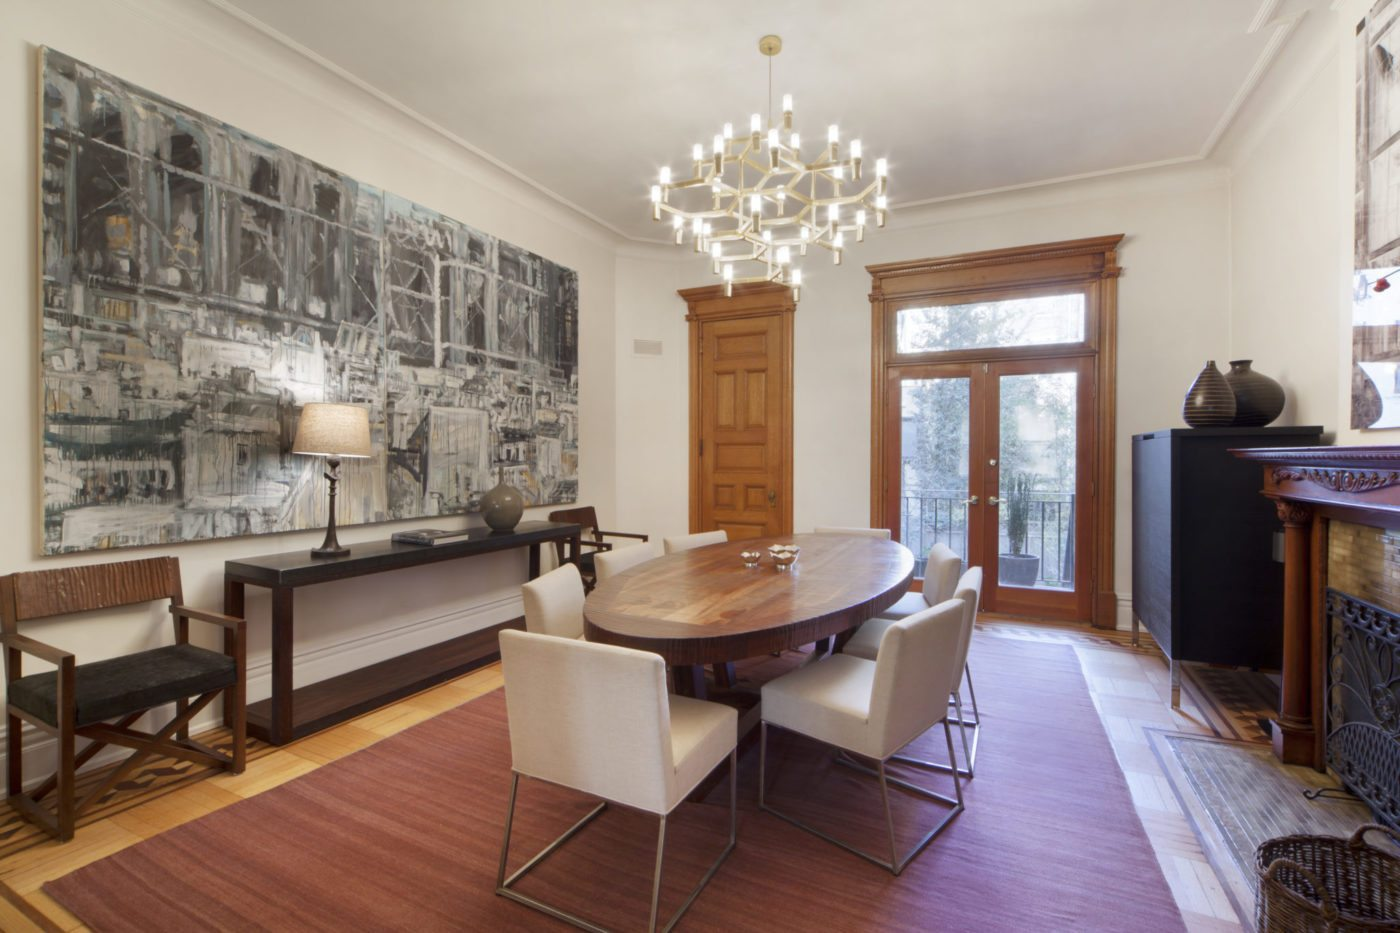 Luxury listing: Upper West Side brownstone